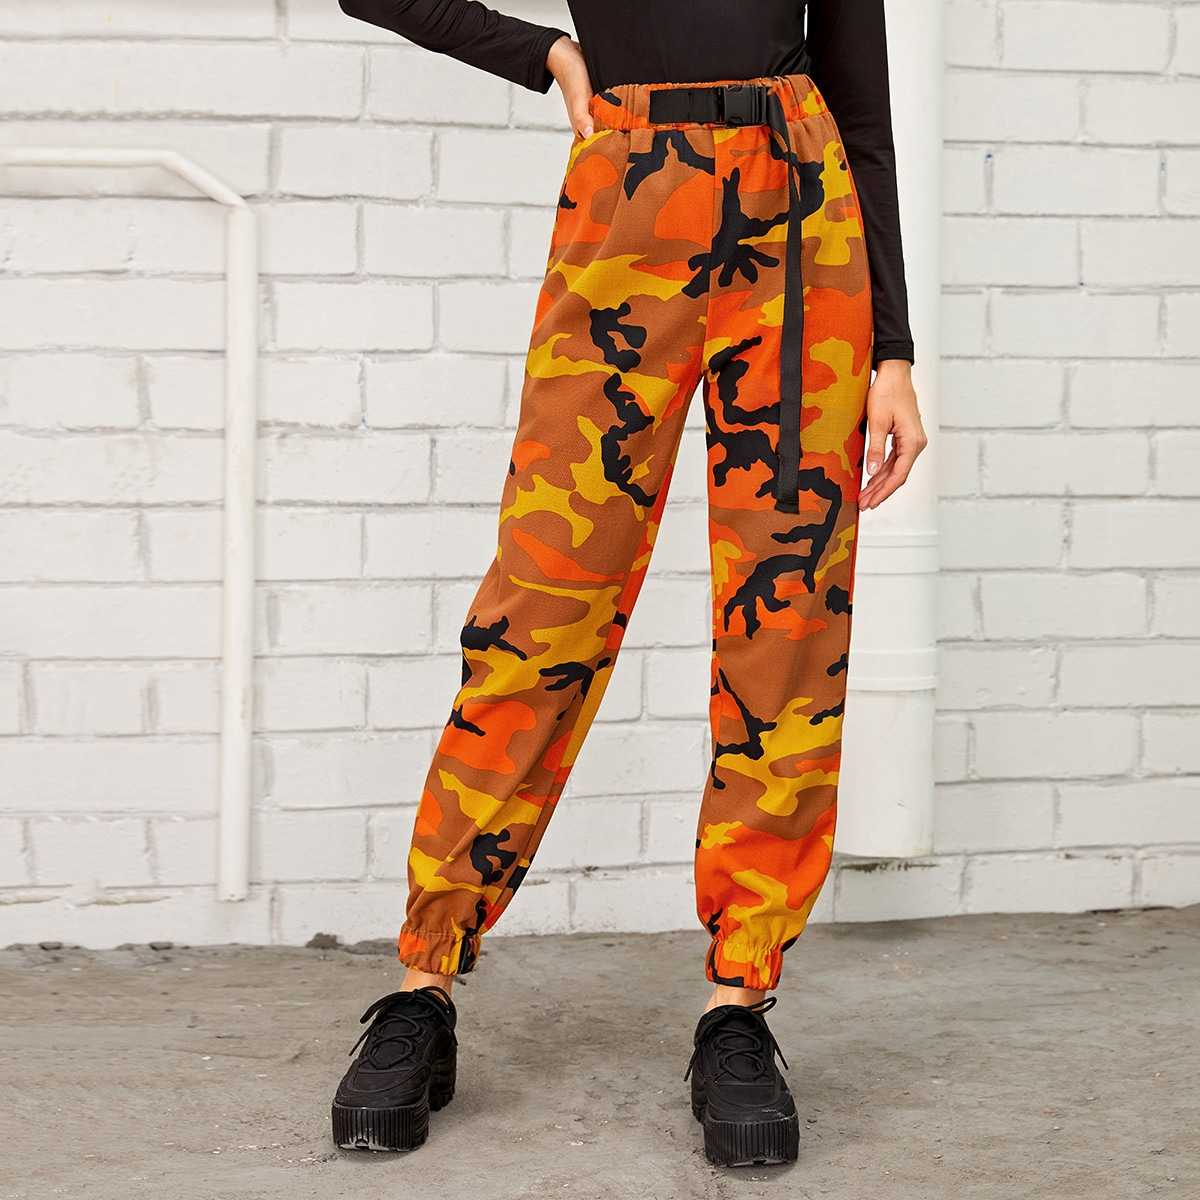 Camo Print Bulker Belted Cargo Pants in Multicolor by ROMWE on GOOFASH